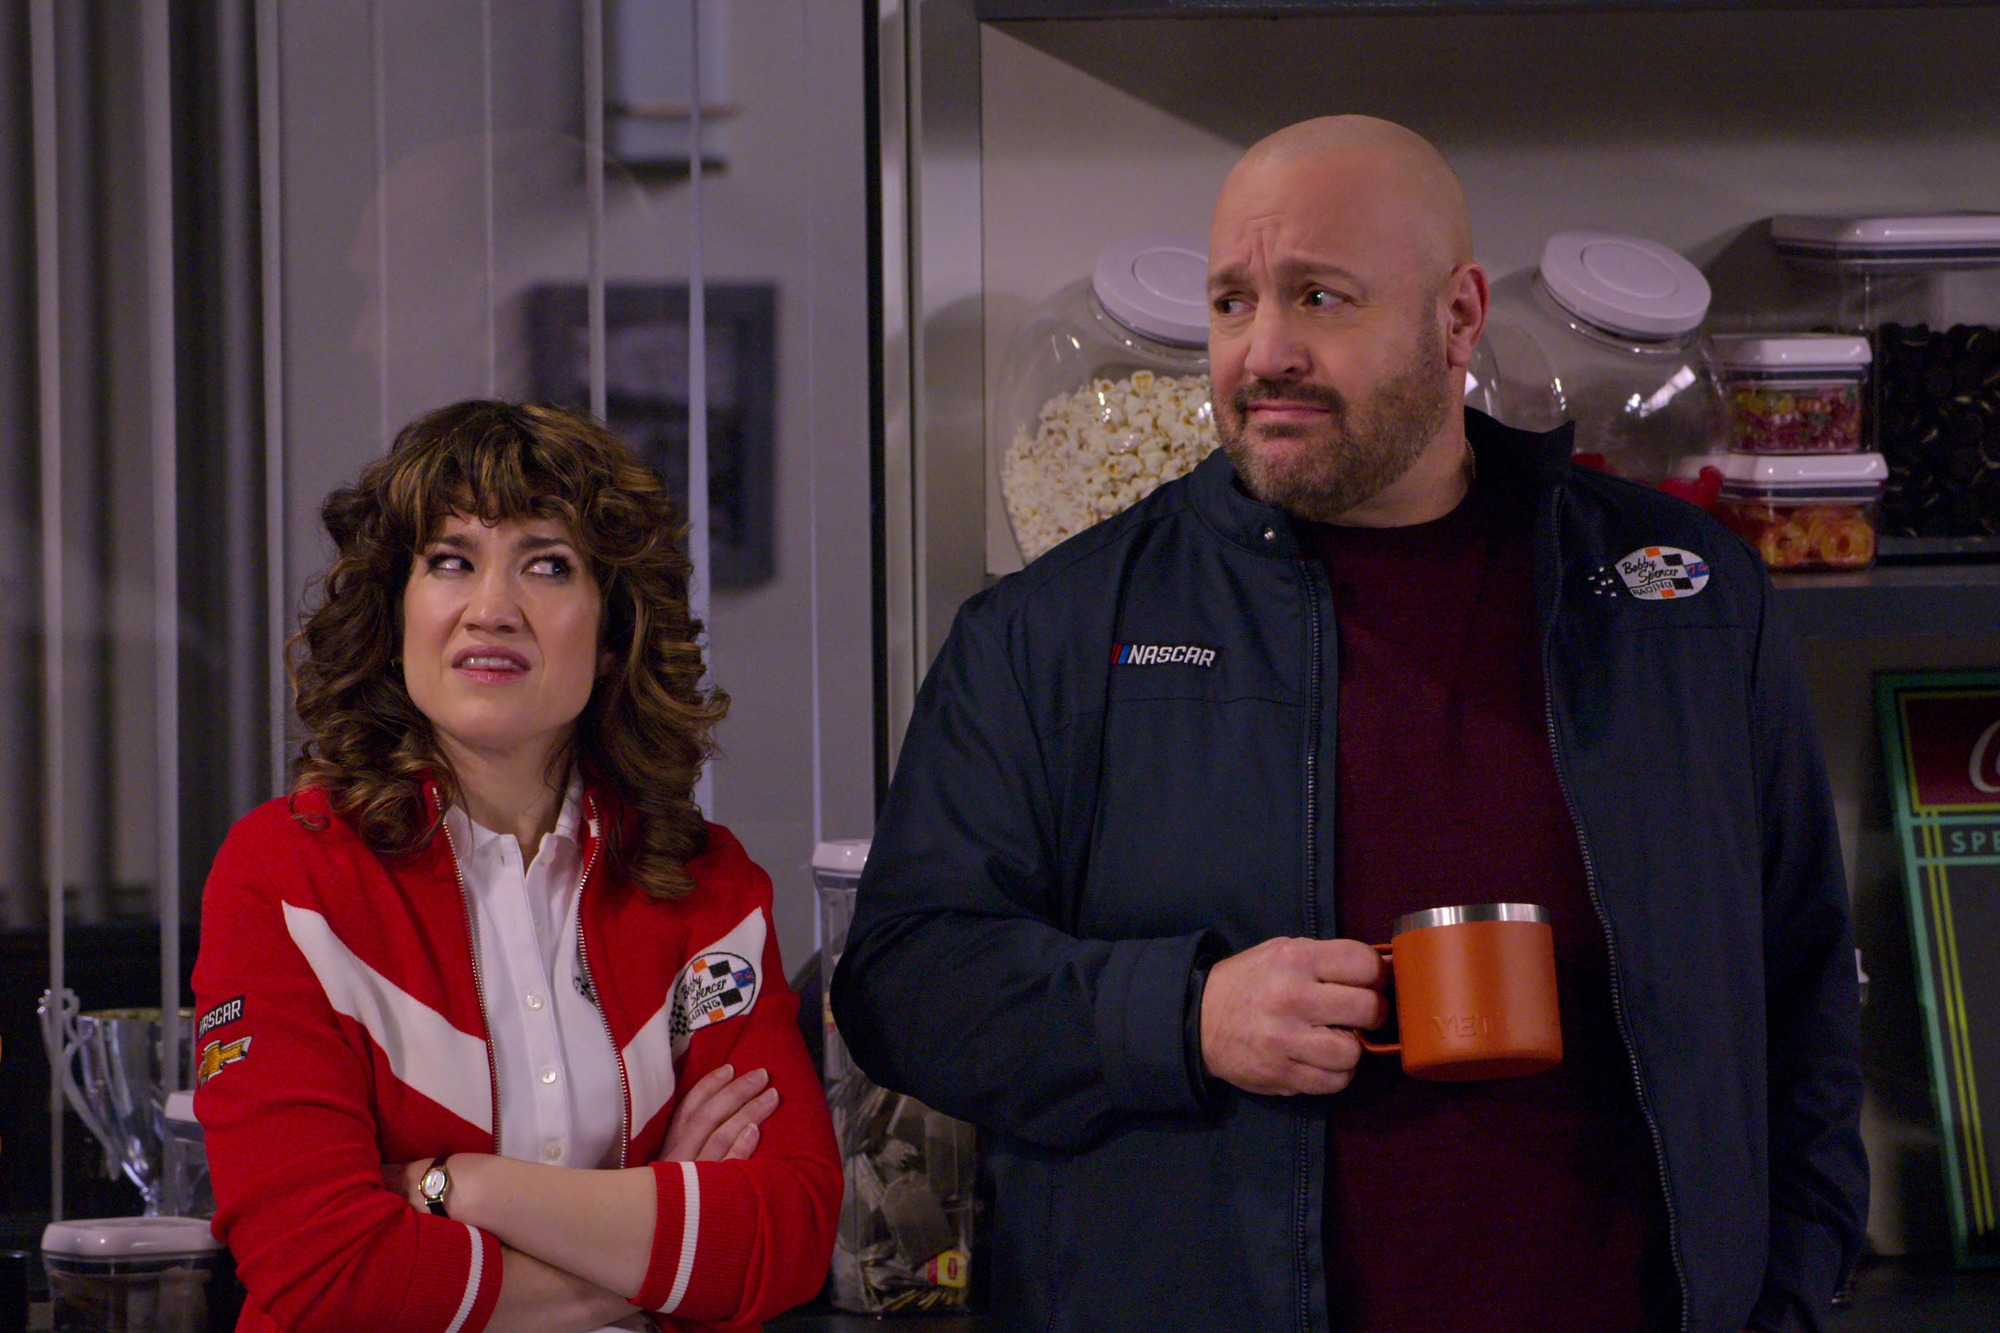 'The Crew' features Sarah Stiles and Kevin James.